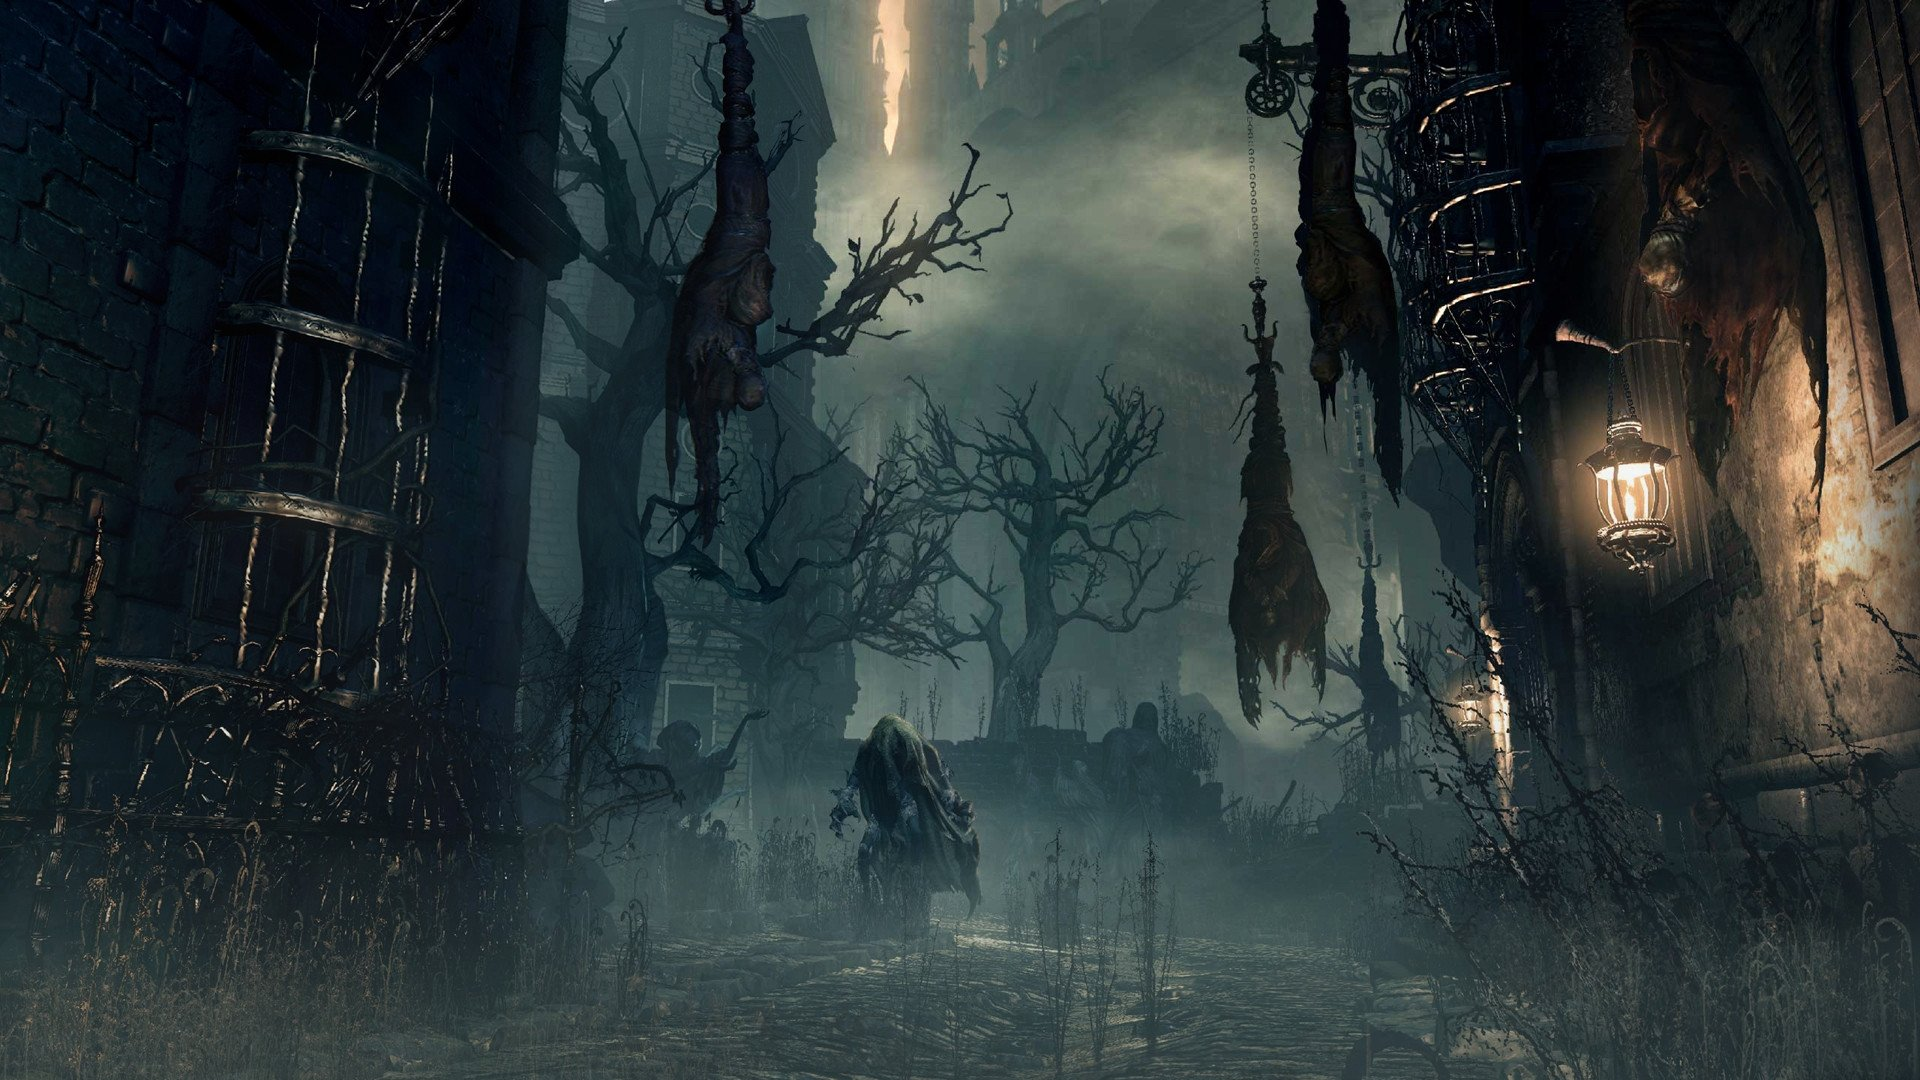 Magnificent bloodborne wallpaper full hd pictures - Wallpaper pictures ...